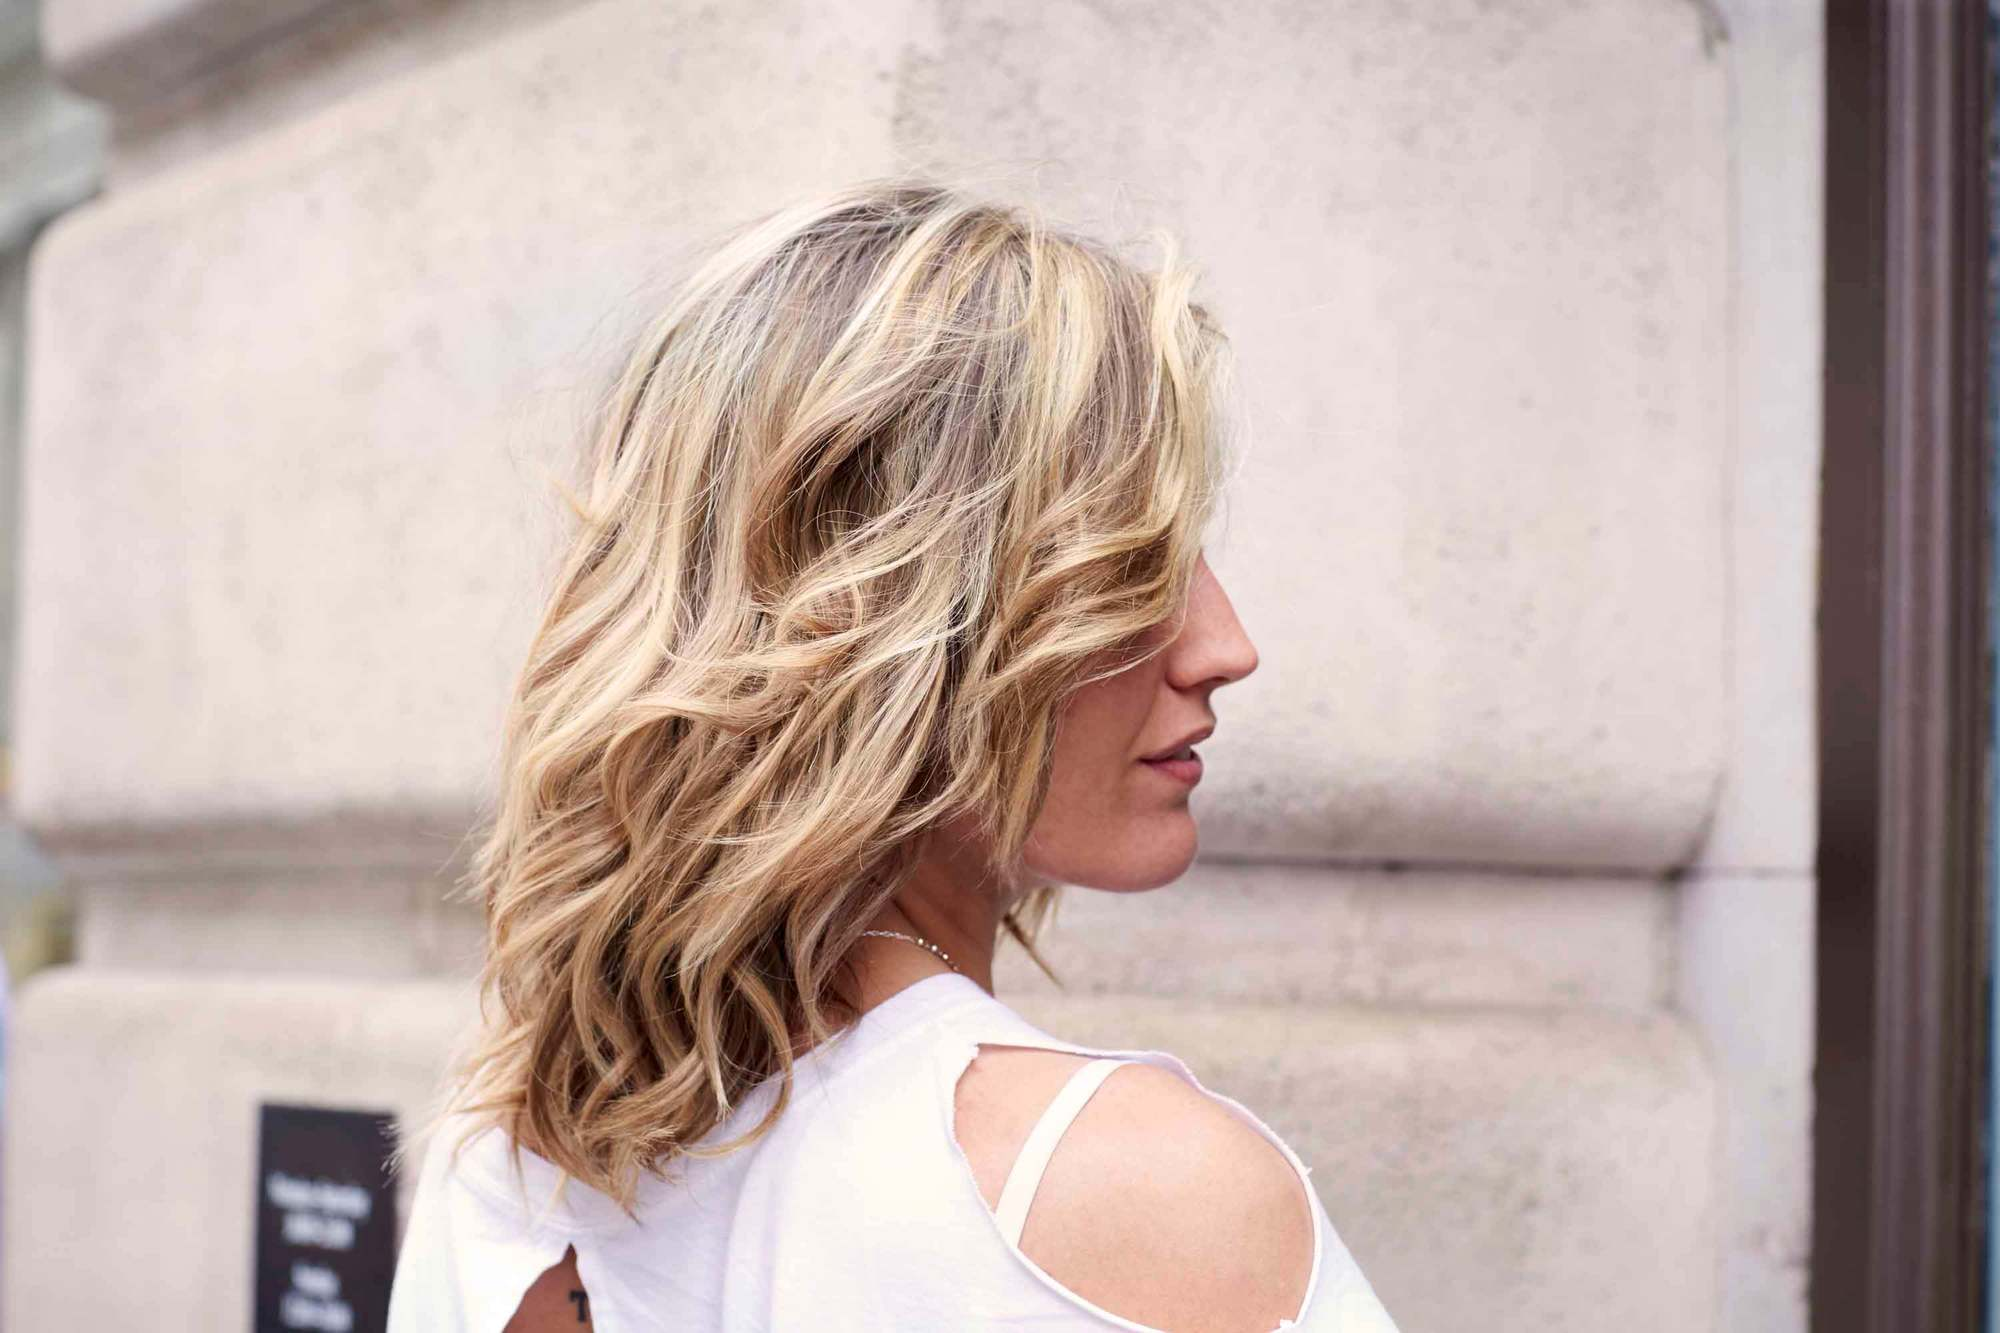 Thick Wavy Hair: How To Style Your Hair In 5 Ways